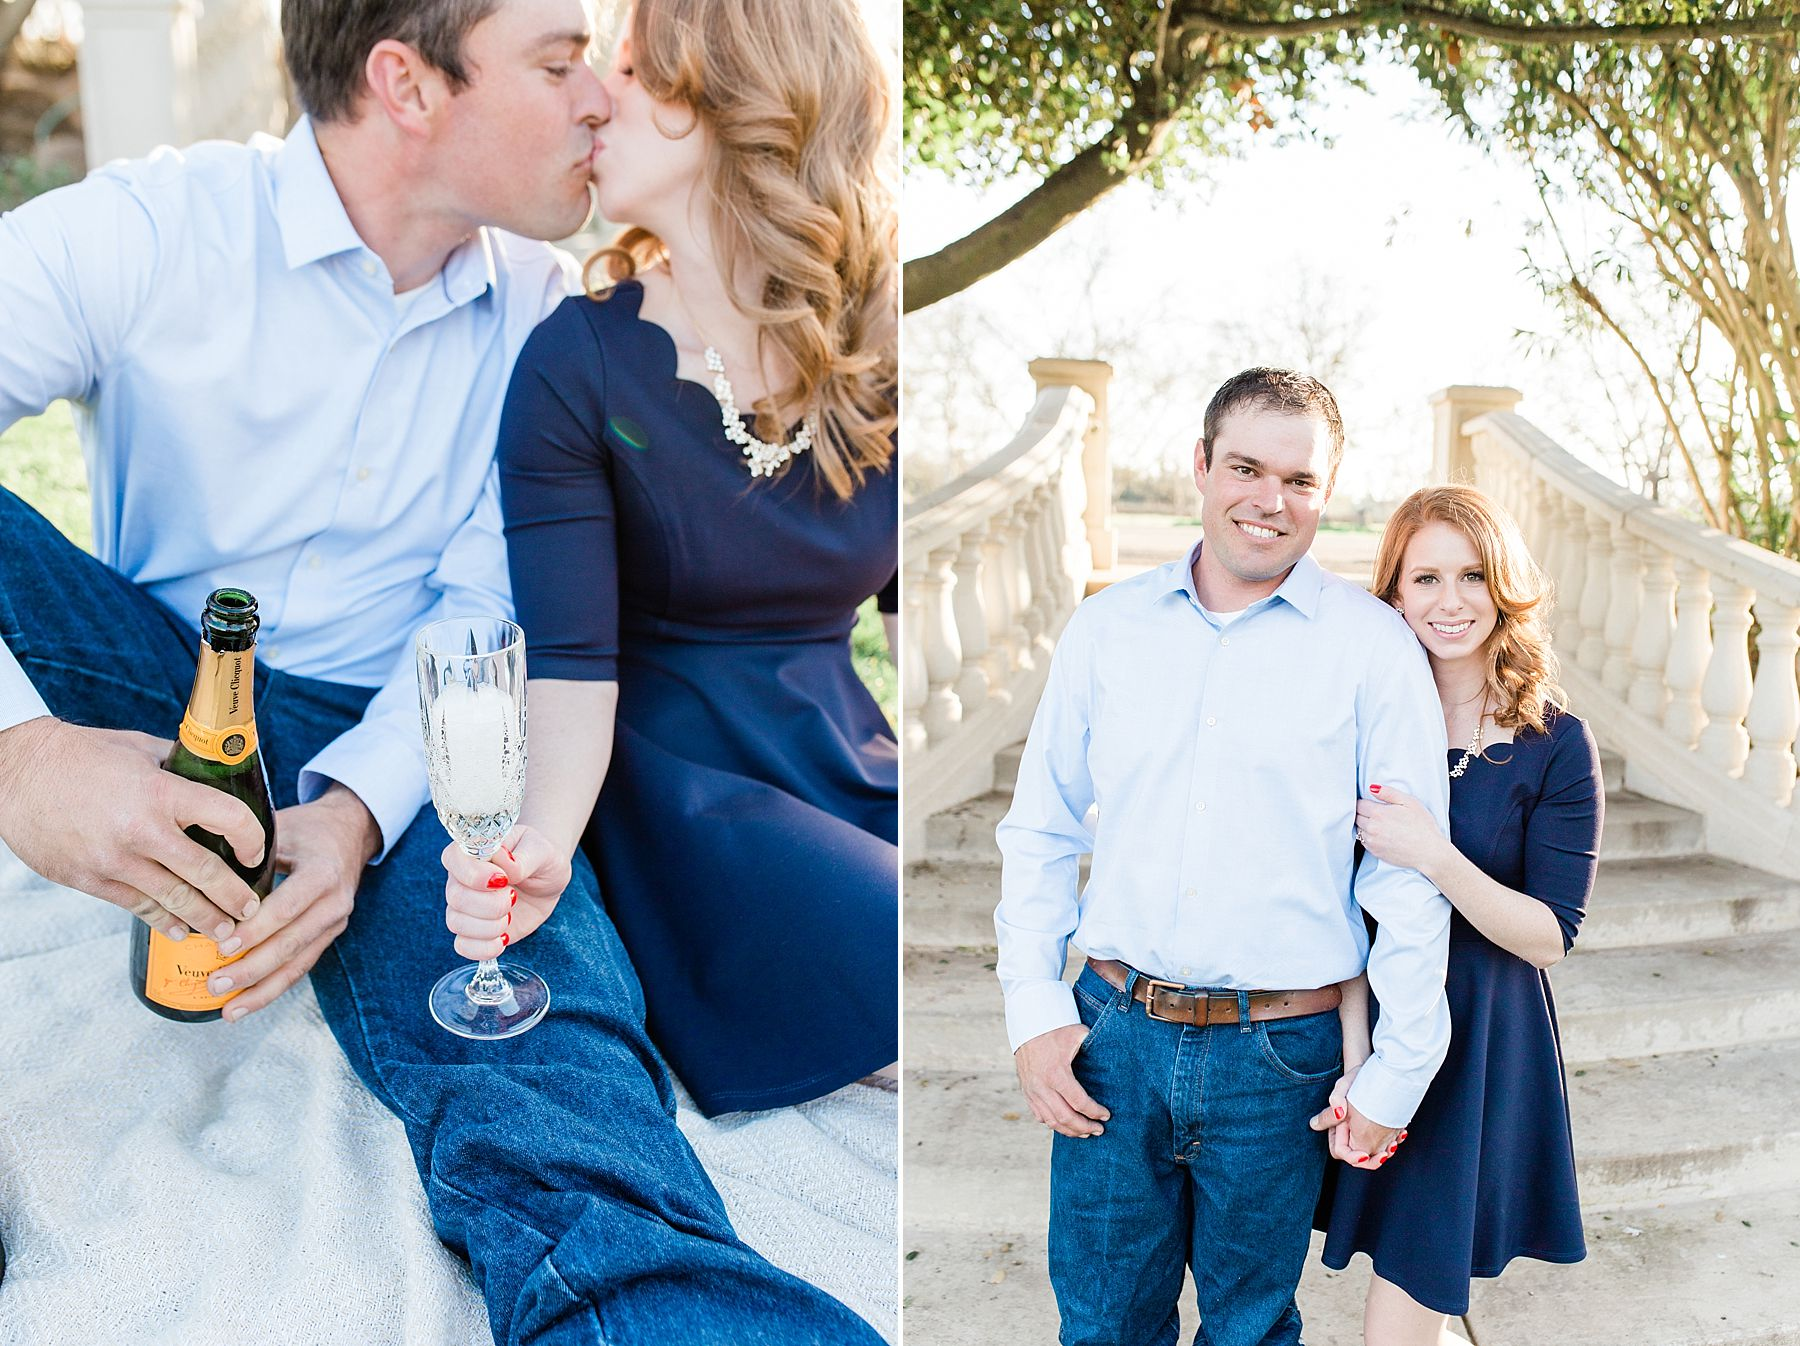 Viaggio Winery Engagement Session - Liz and TJ - Lodi Winery Wedding Photographer_0008.jpg